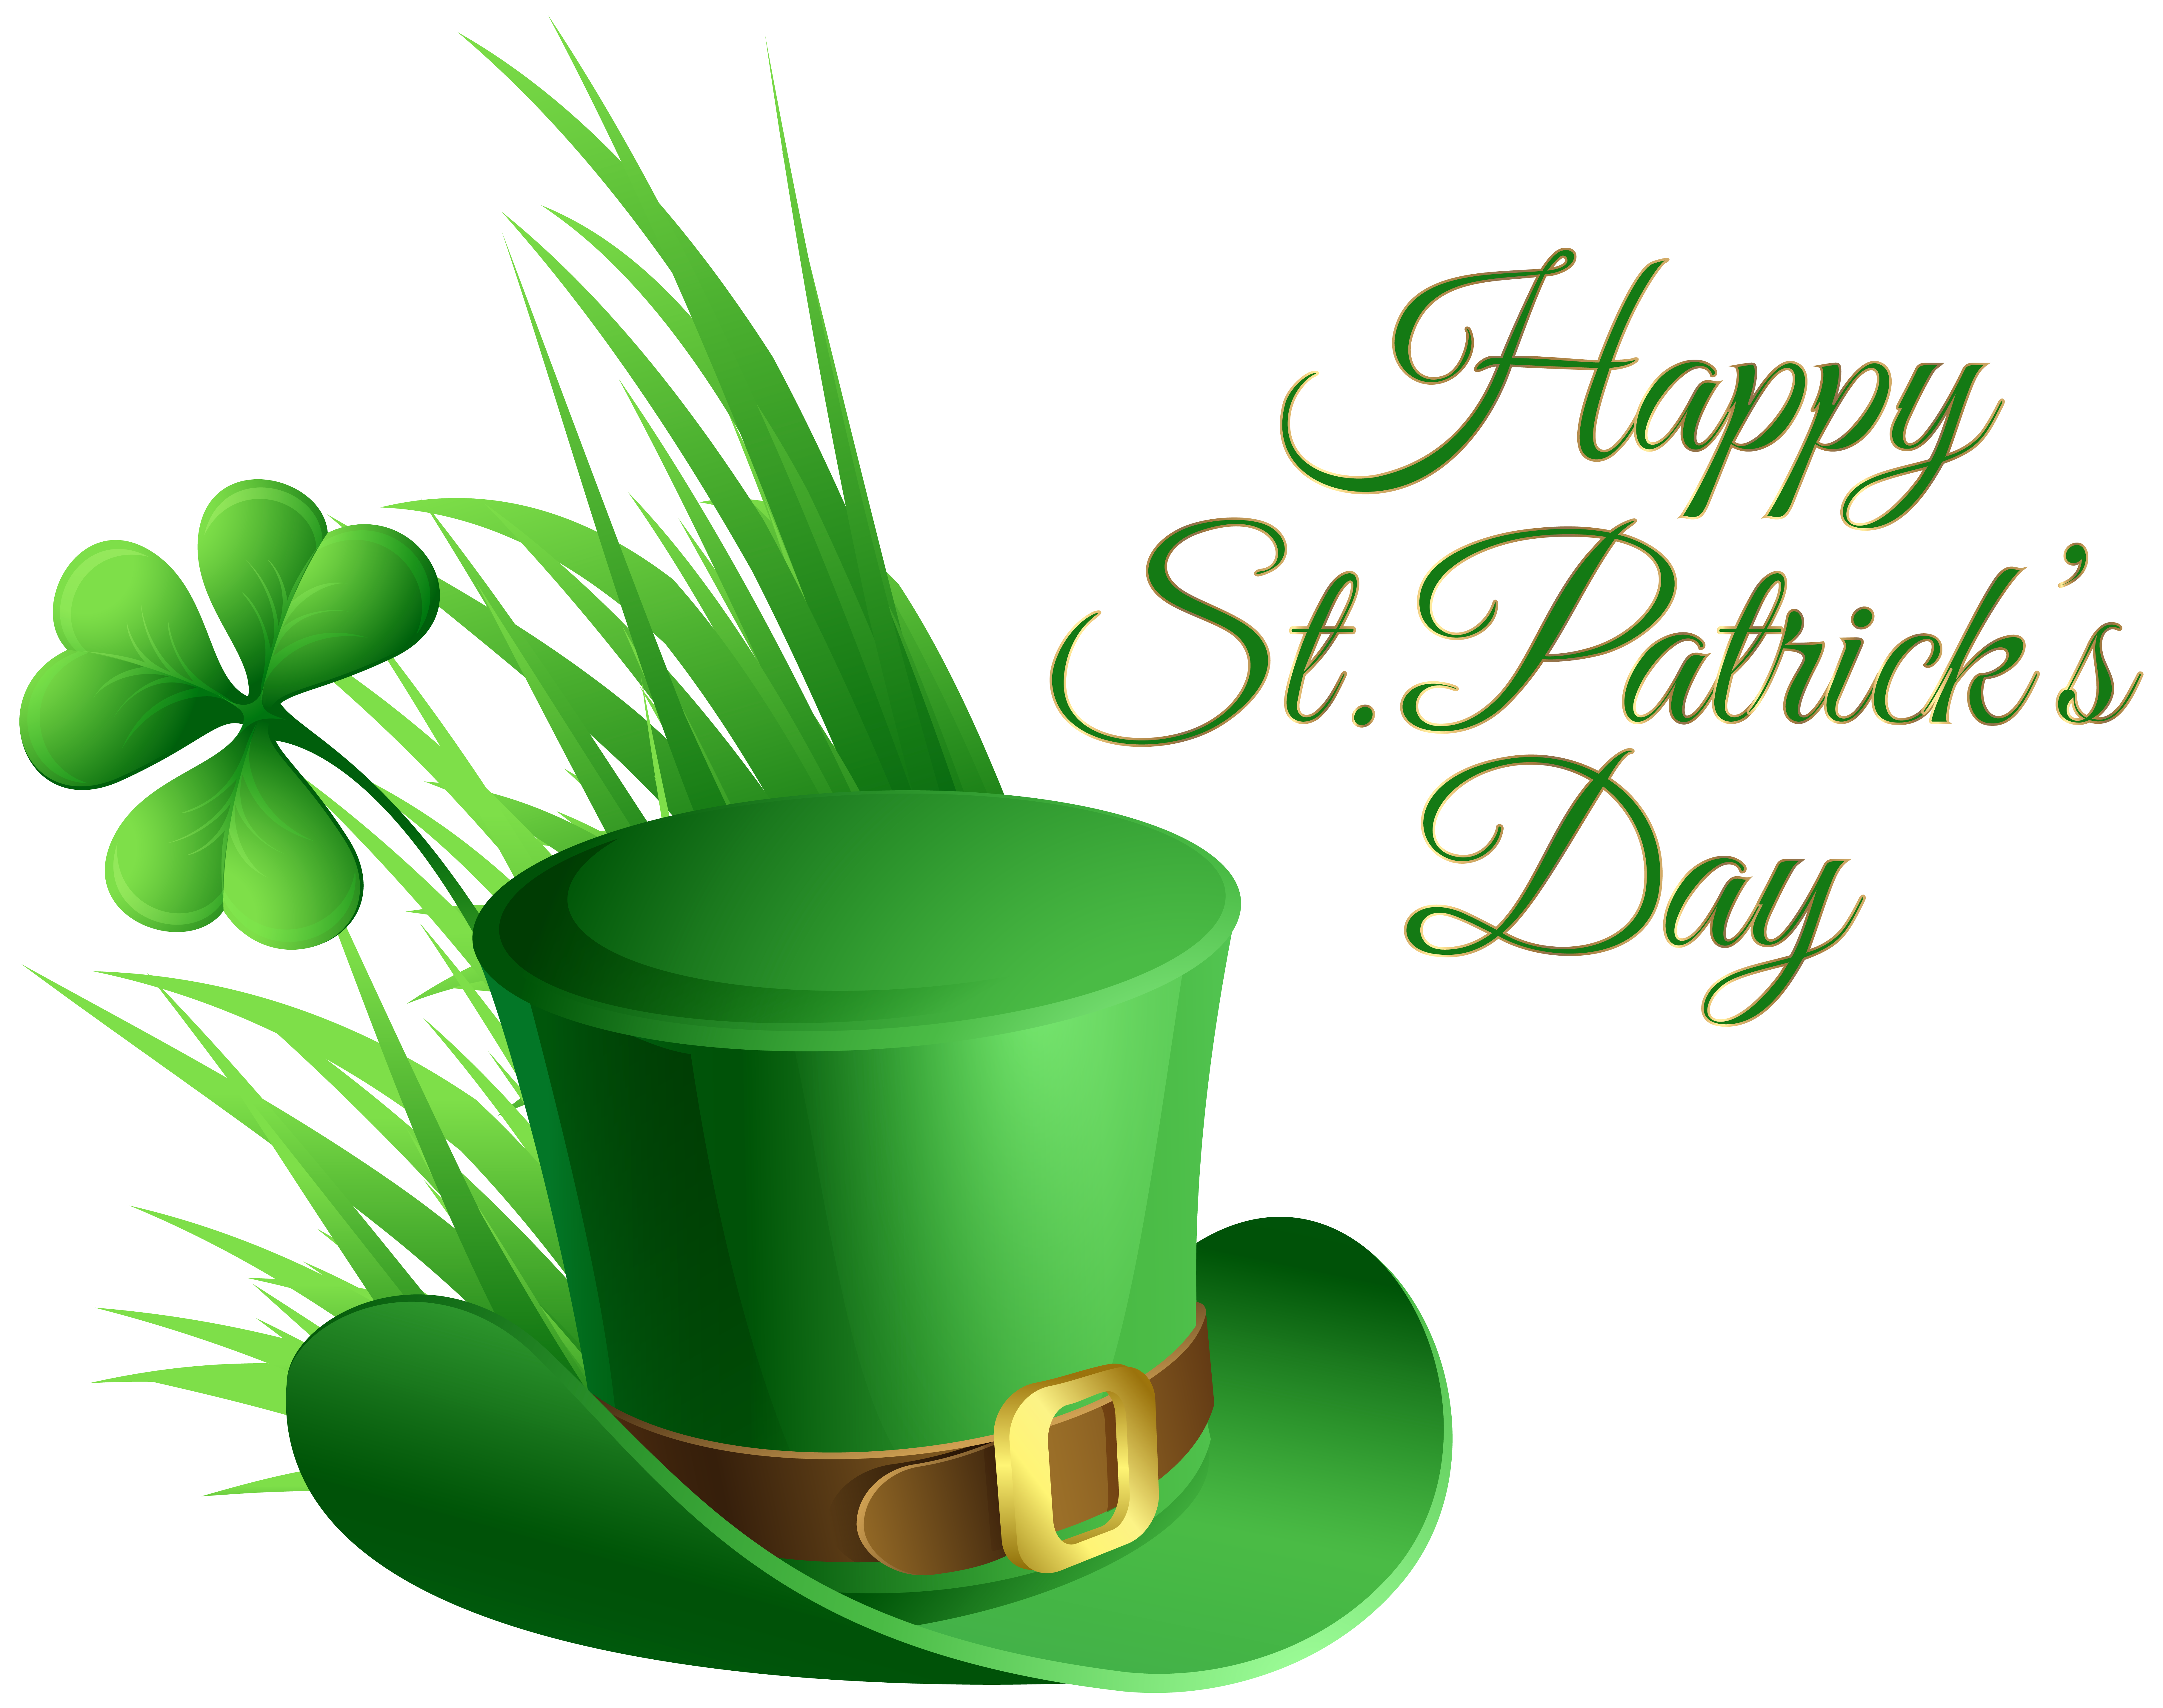 2017 clipart st patrick's day. Patricks hat and shamrock